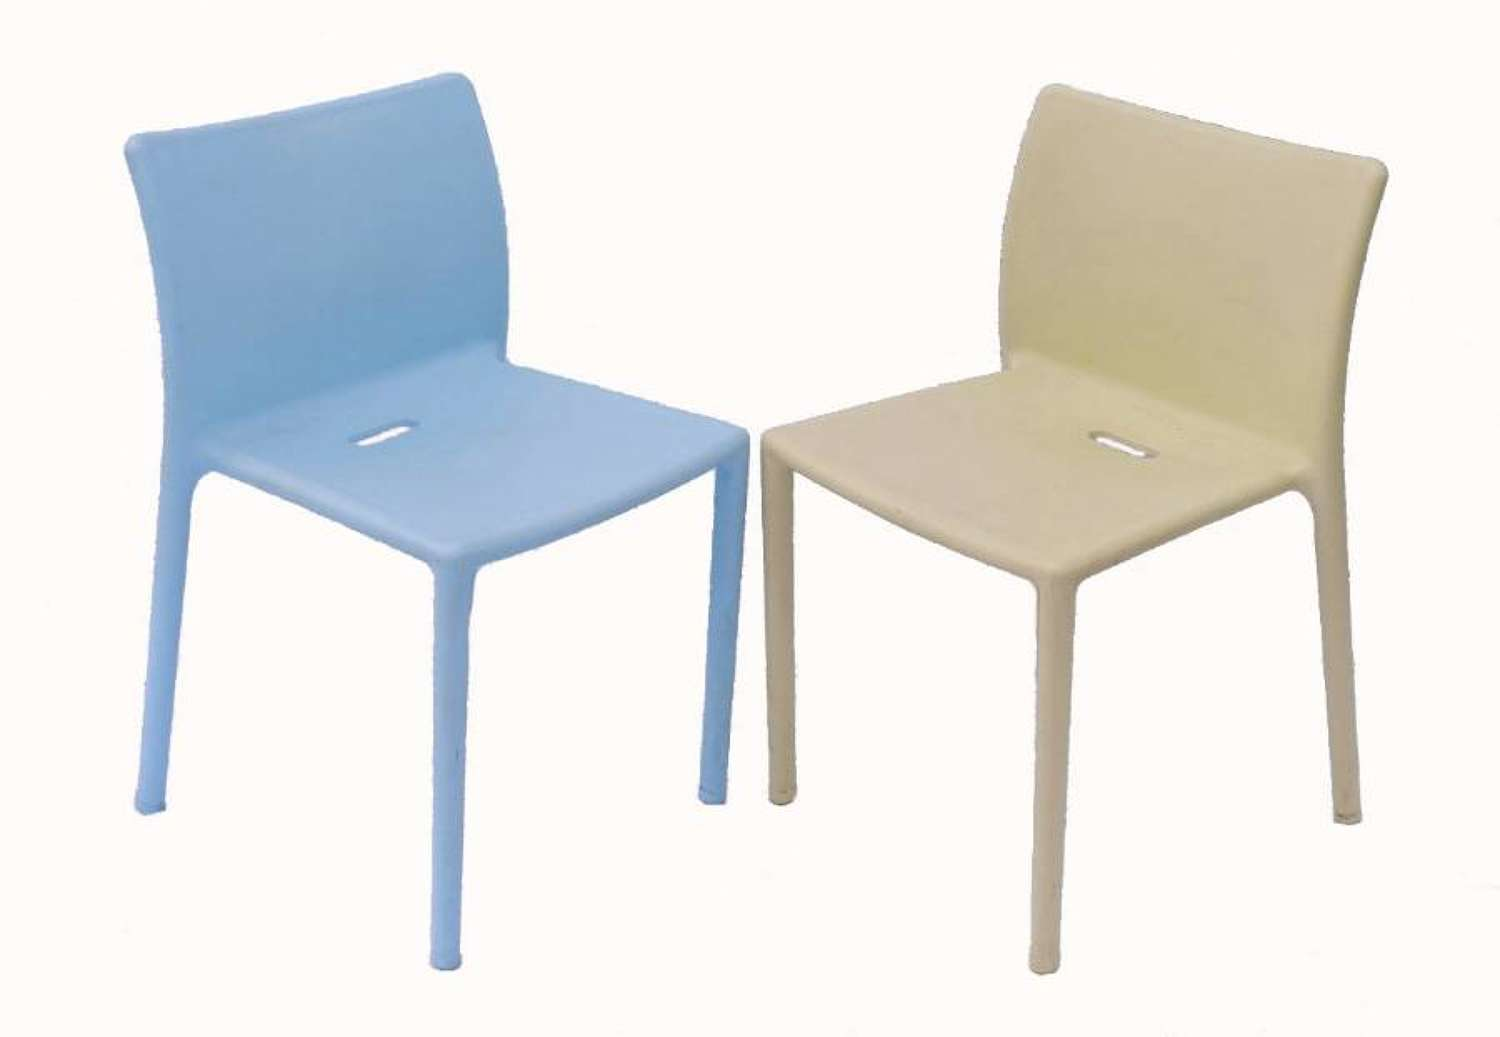 7 Stacking Air Chairs by Jasper Morrison for Magis